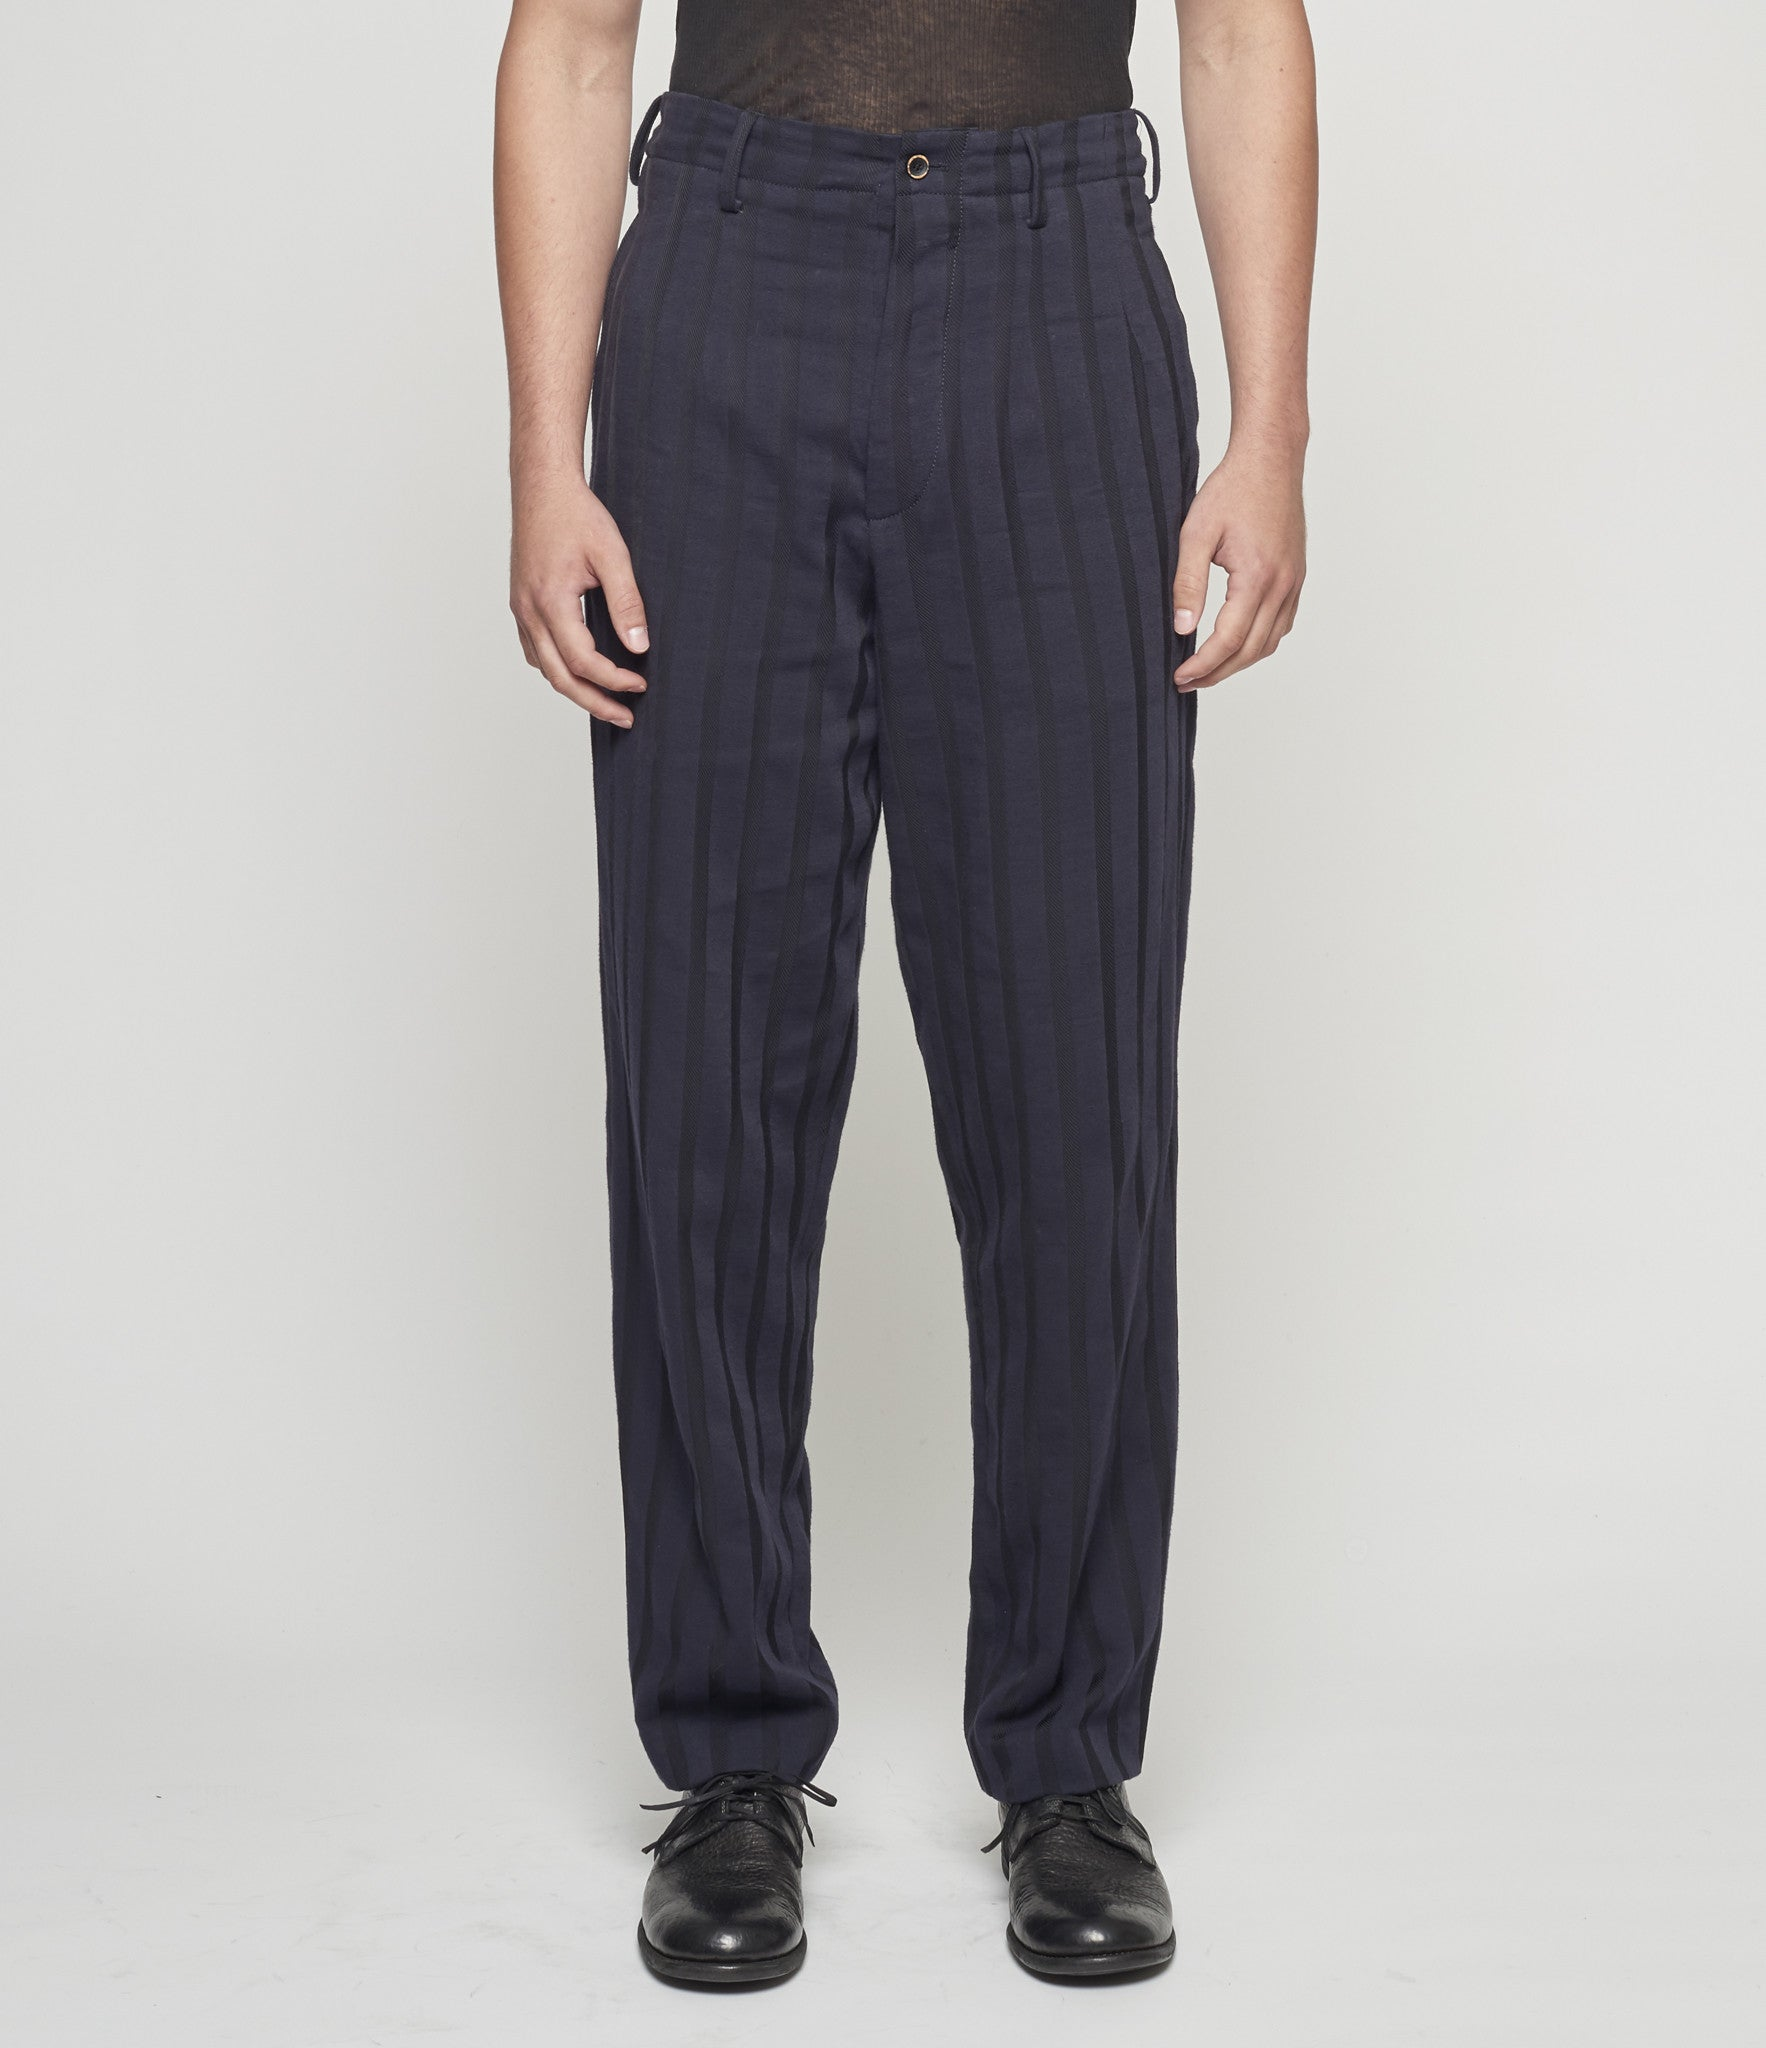 Uma Wang Textured Stripes Osaka Pants